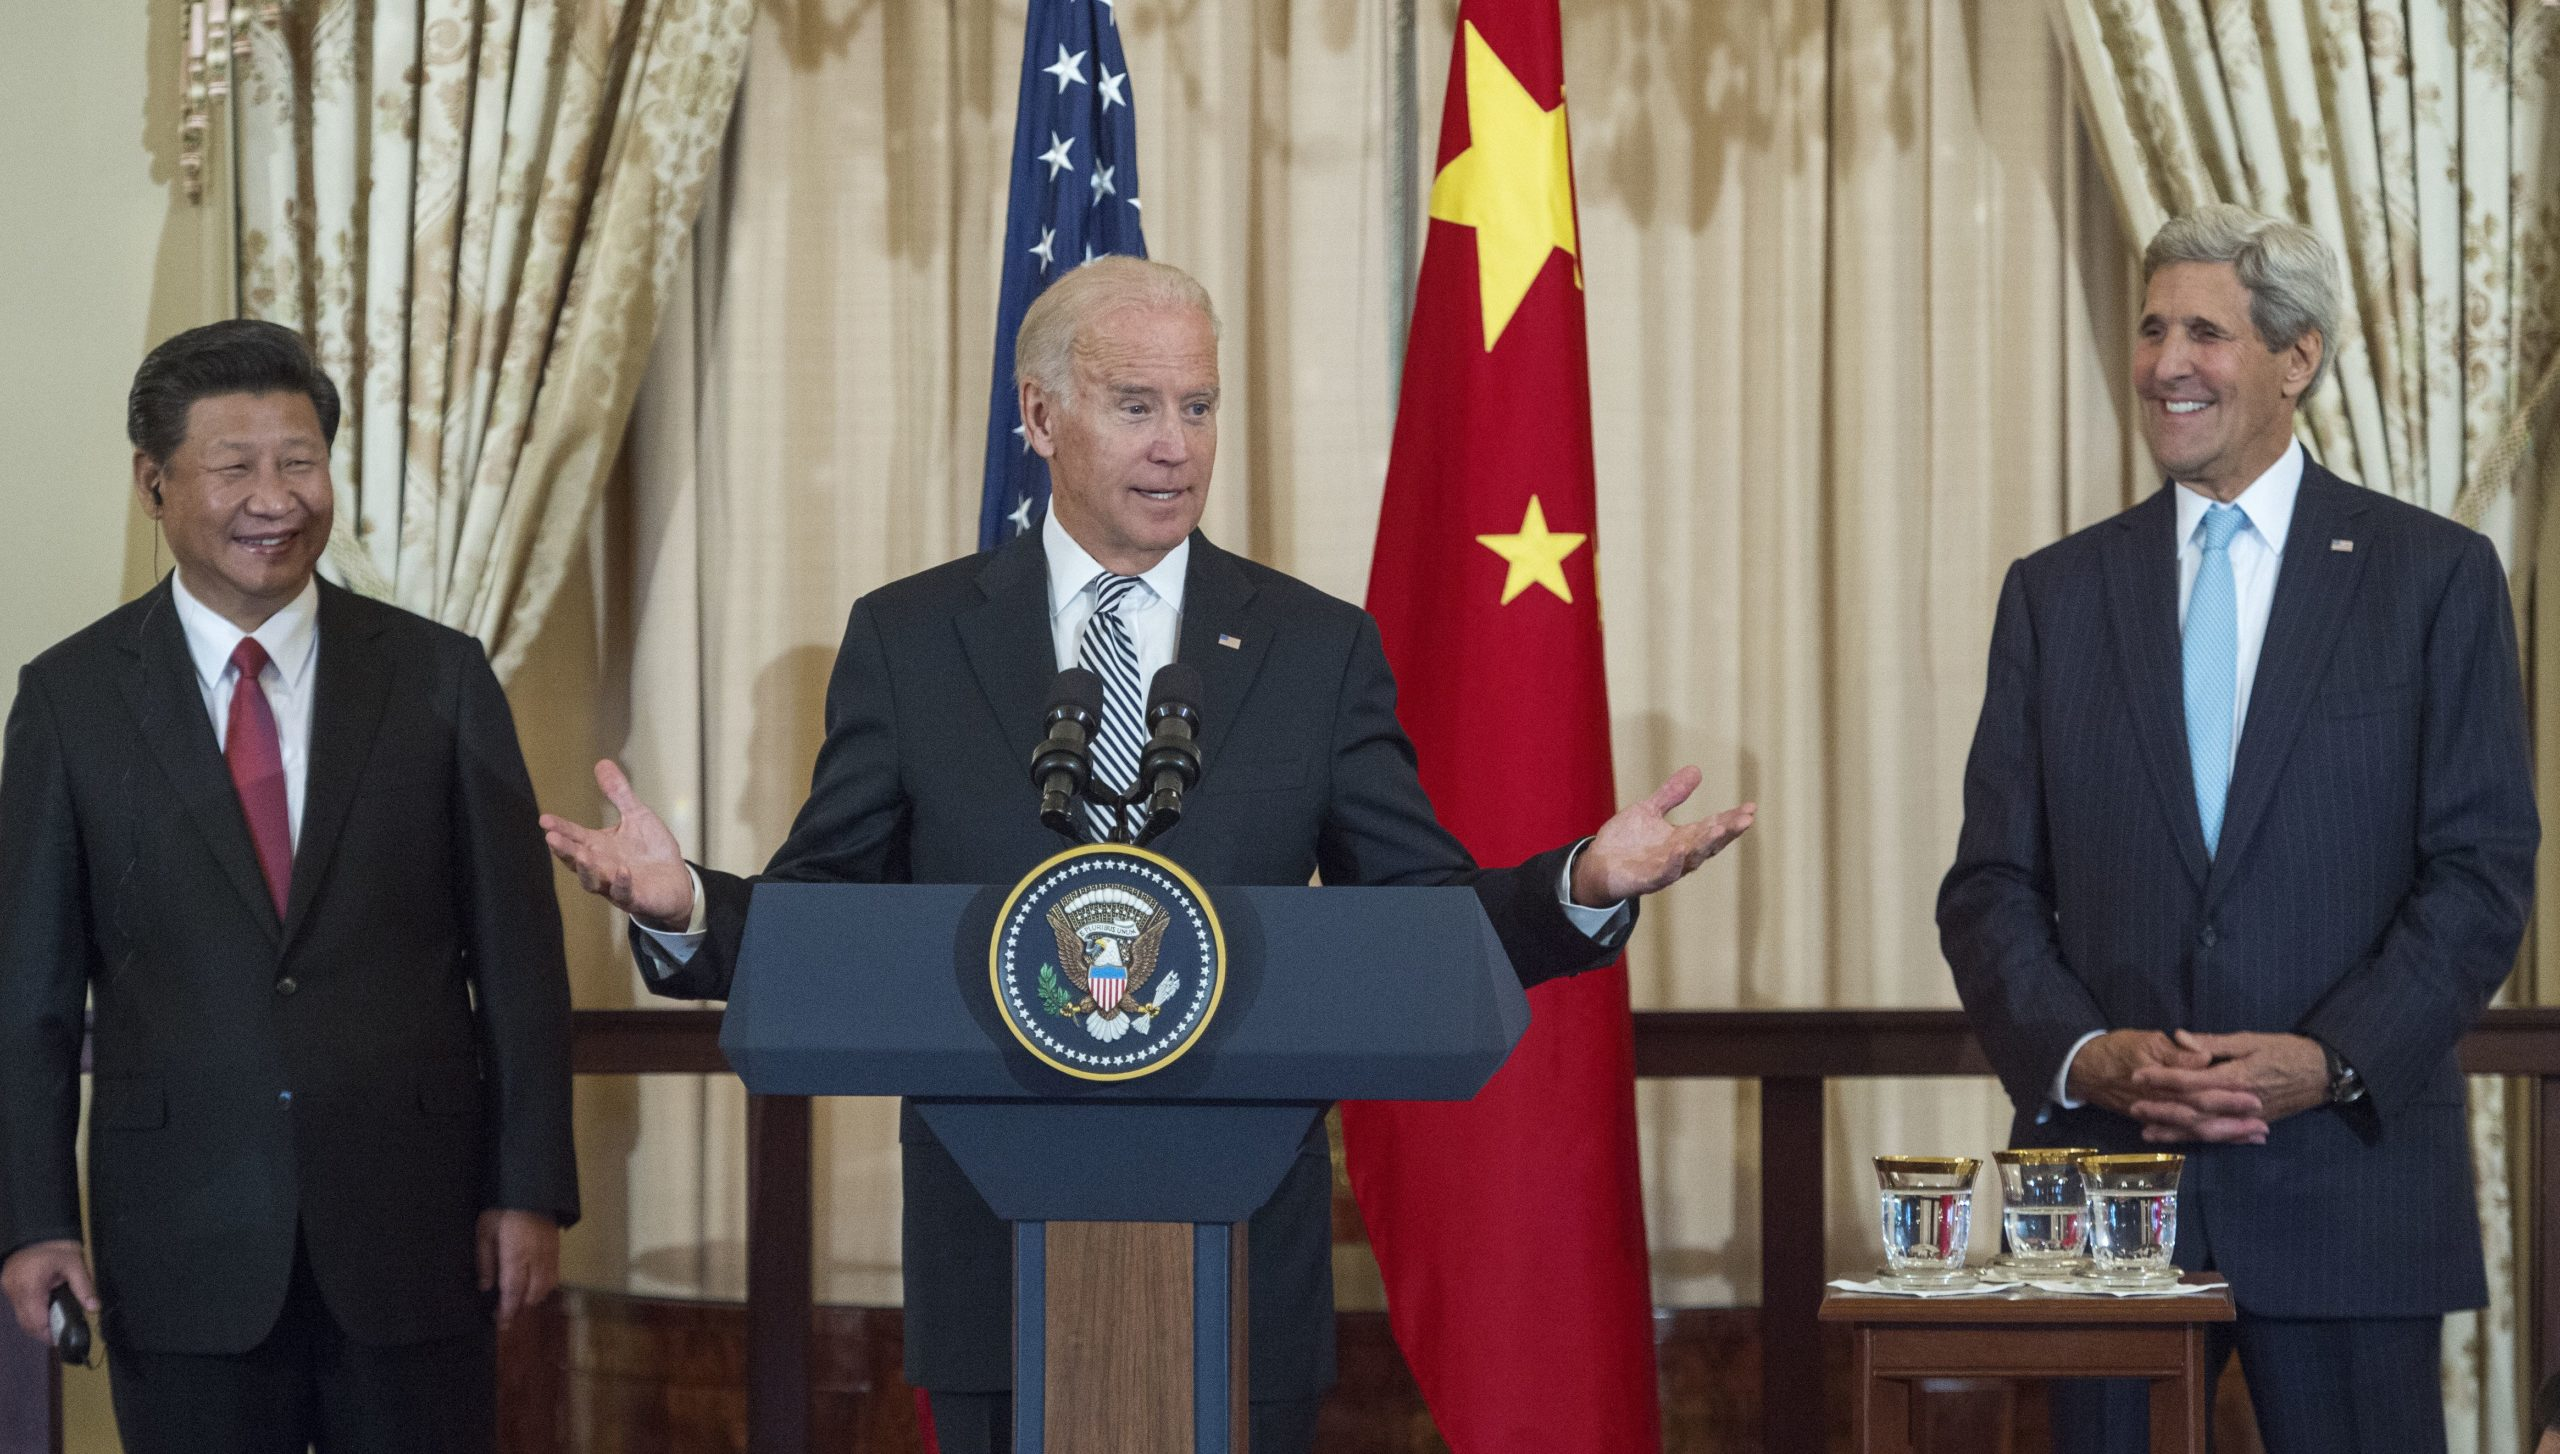 Chinese President Xi Jinping (L) and US Secretary of State John Kerry (R) listens as US Vice President Joe Biden speaks during a State Luncheon for China hosted by Kerry on September 25, 2015 at the Department of State in Washington, DC. (PAUL J. RICHARDS/AFP via Getty Images)